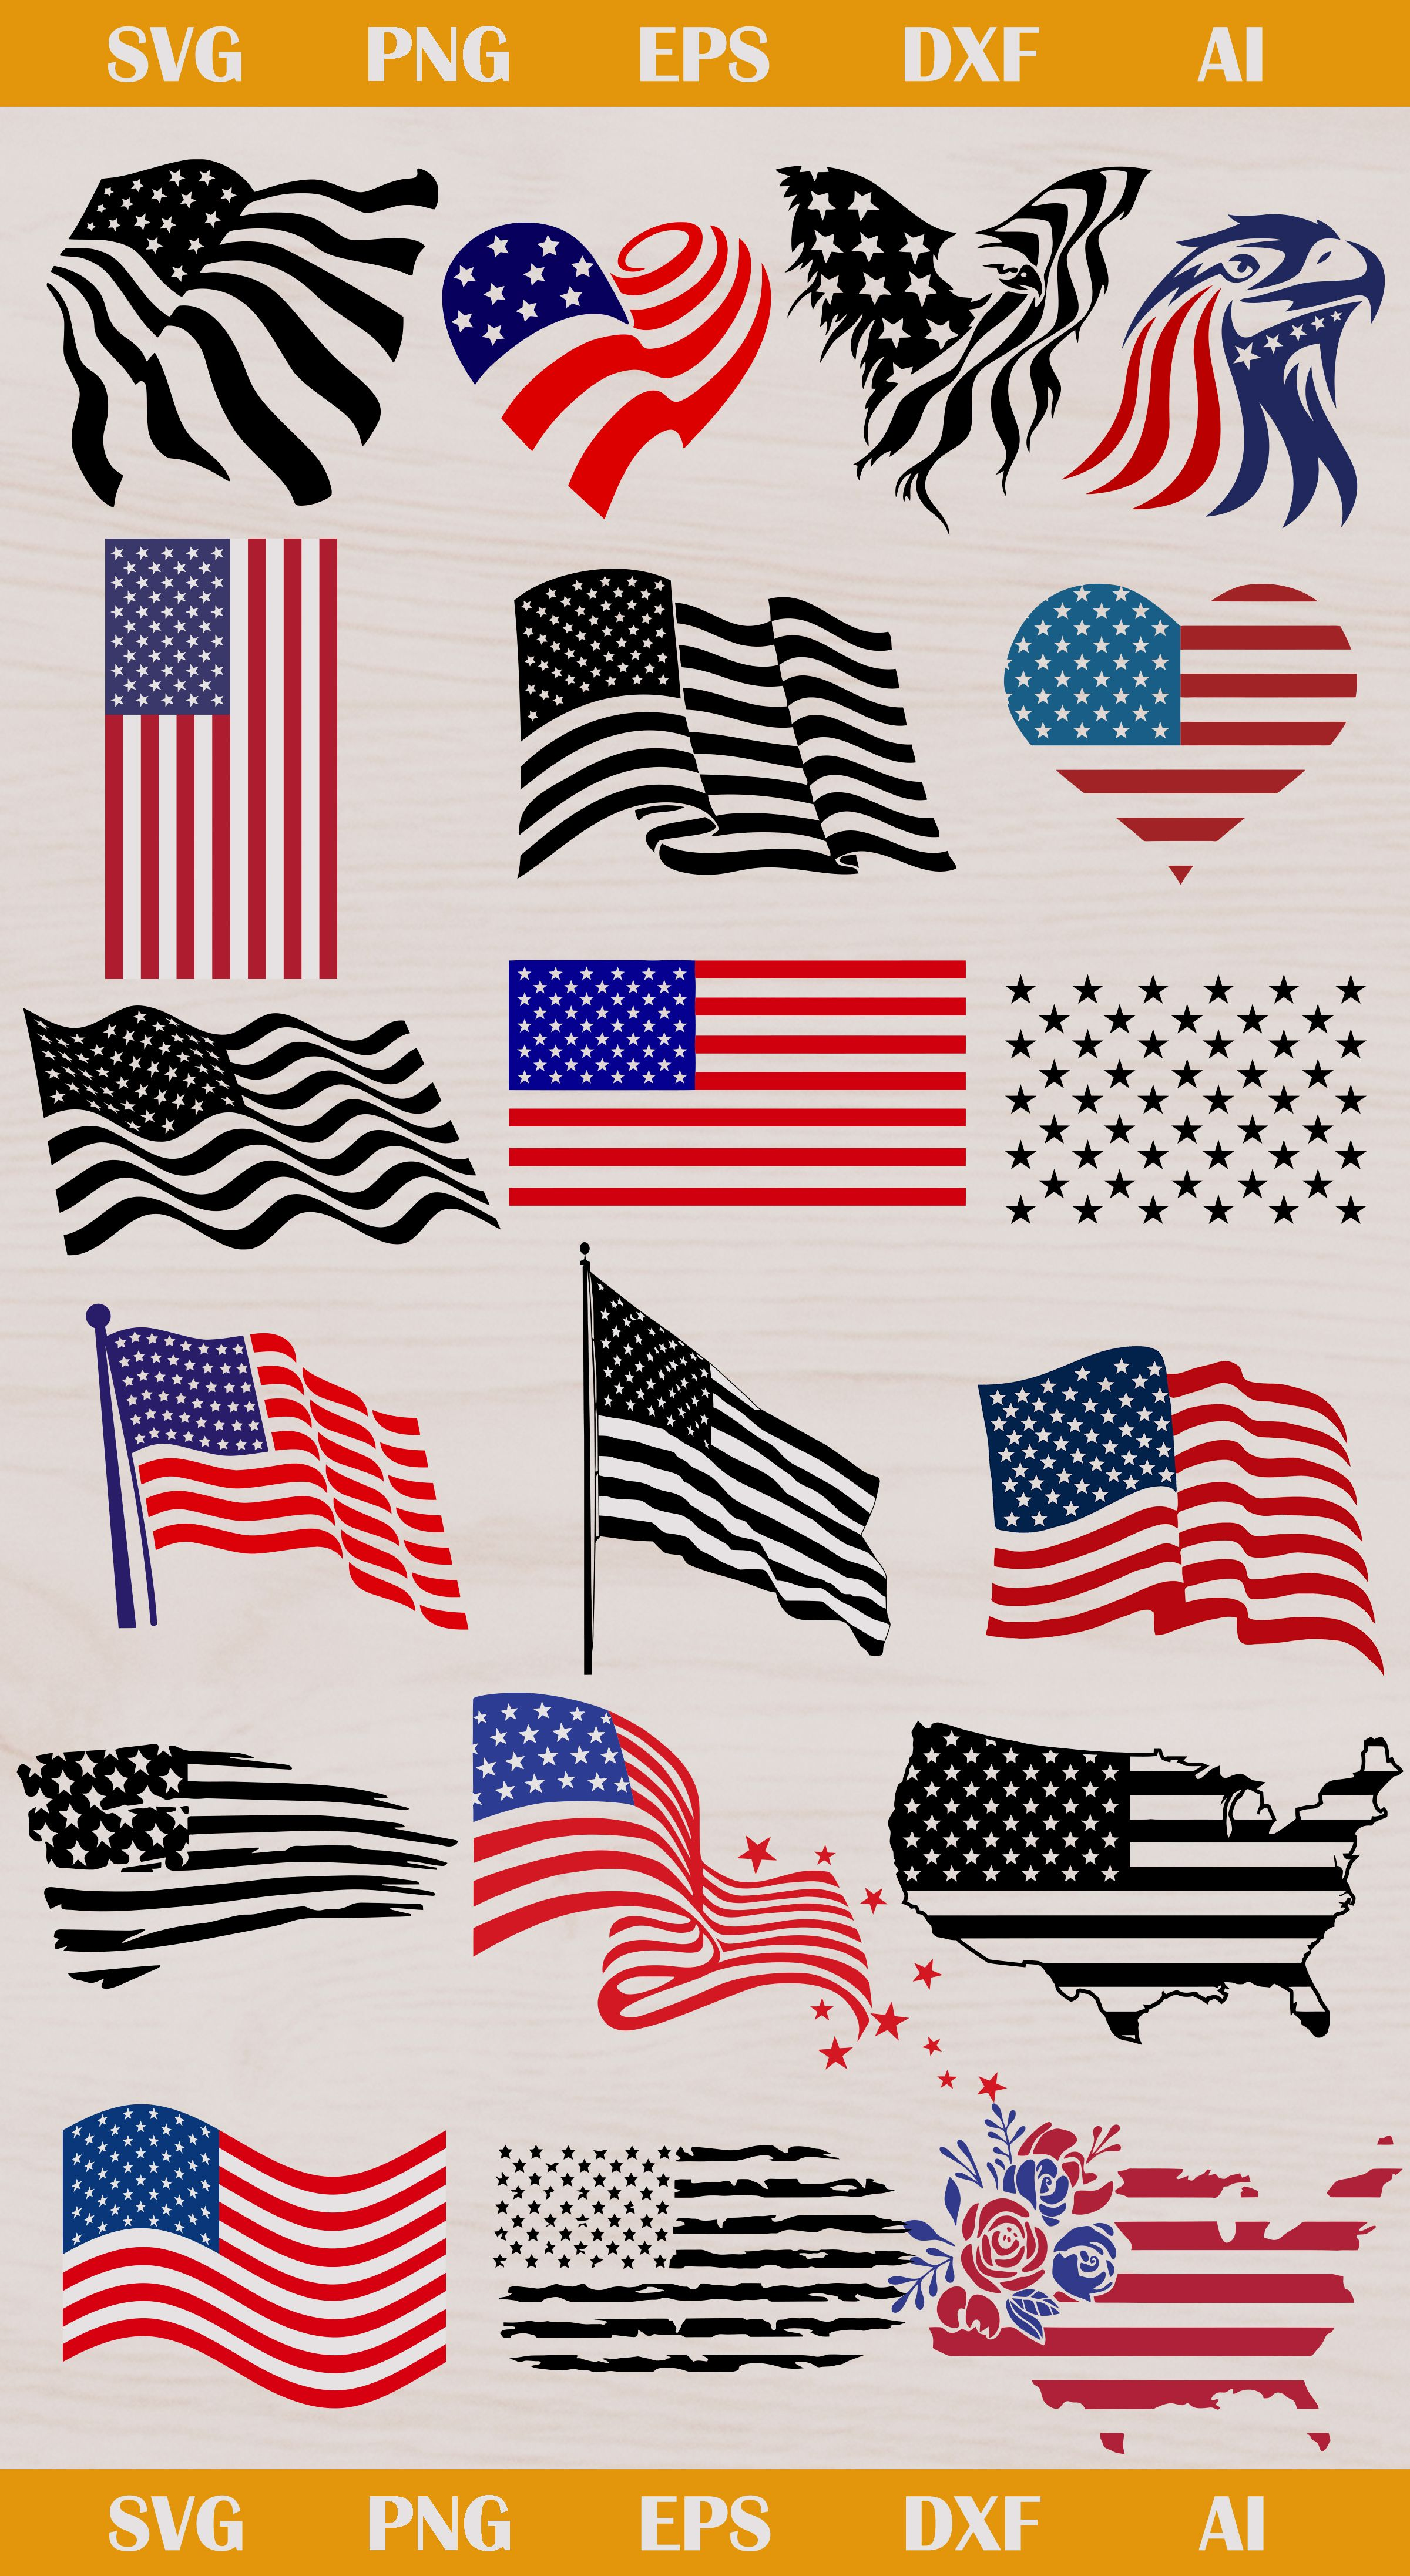 American flag svg, US flag SVG, EPS, DXF, AI, PNG